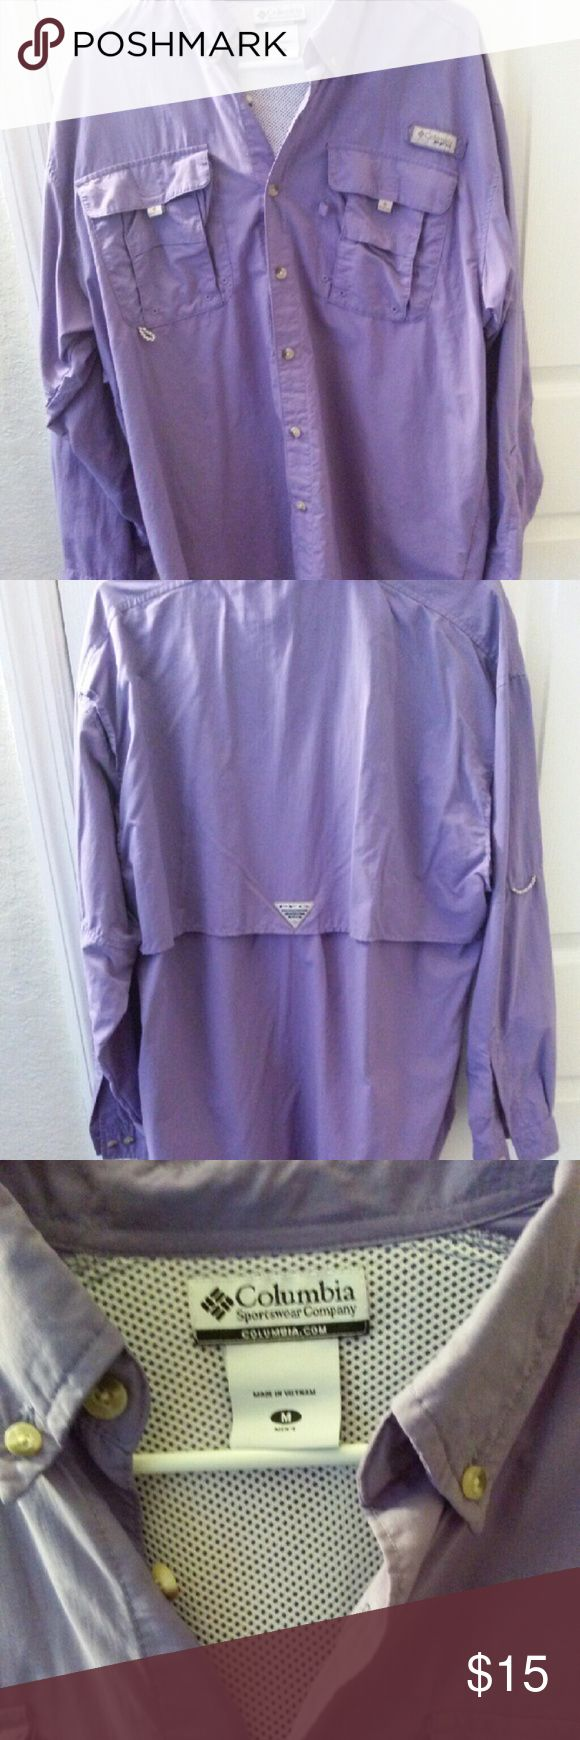 Colombia Sportswear Shirt ? Designed specifically for the needs of anglers, this lightweight, durable nylon shirt dries fast, with mesh-lined cape vents at the back shoulder to keep you cool and built-in UV protection. ? Omni-Shade UPF 30 provides maximum protection for long hours in the sun ? Hidden vents at shoulders add bonus breathability ? Buttons at upper arm to convert to a short sleeve ? Quick dry ? Relaxed fit ? Size Men's Medium ? Color: Purple/Lavender  ? New without tags. Never…